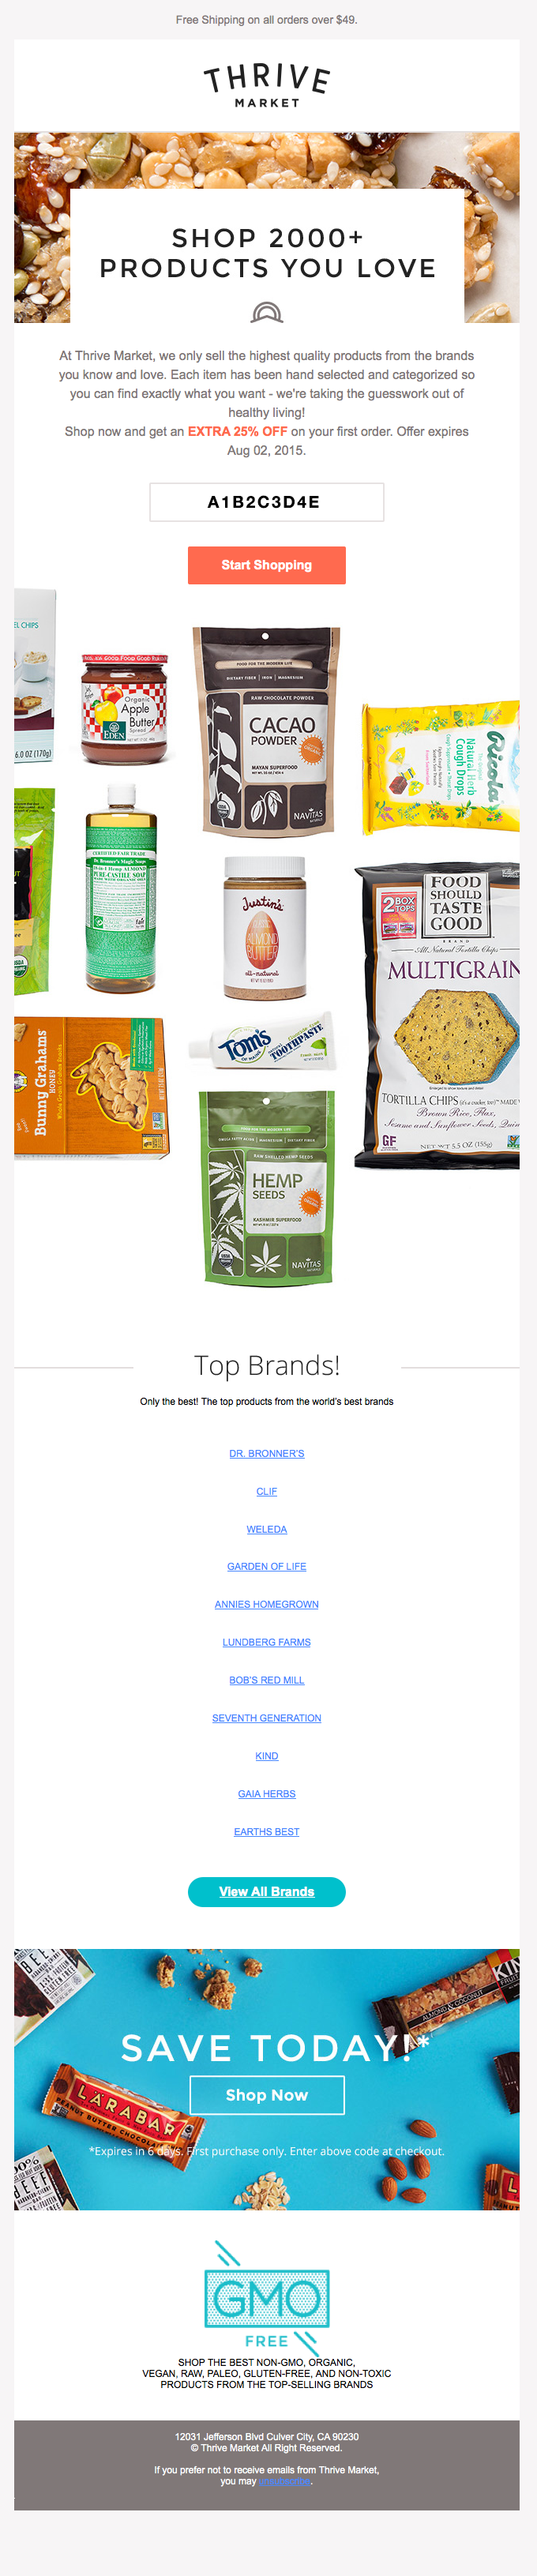 Thrive Food Email: esempio di nutrimento